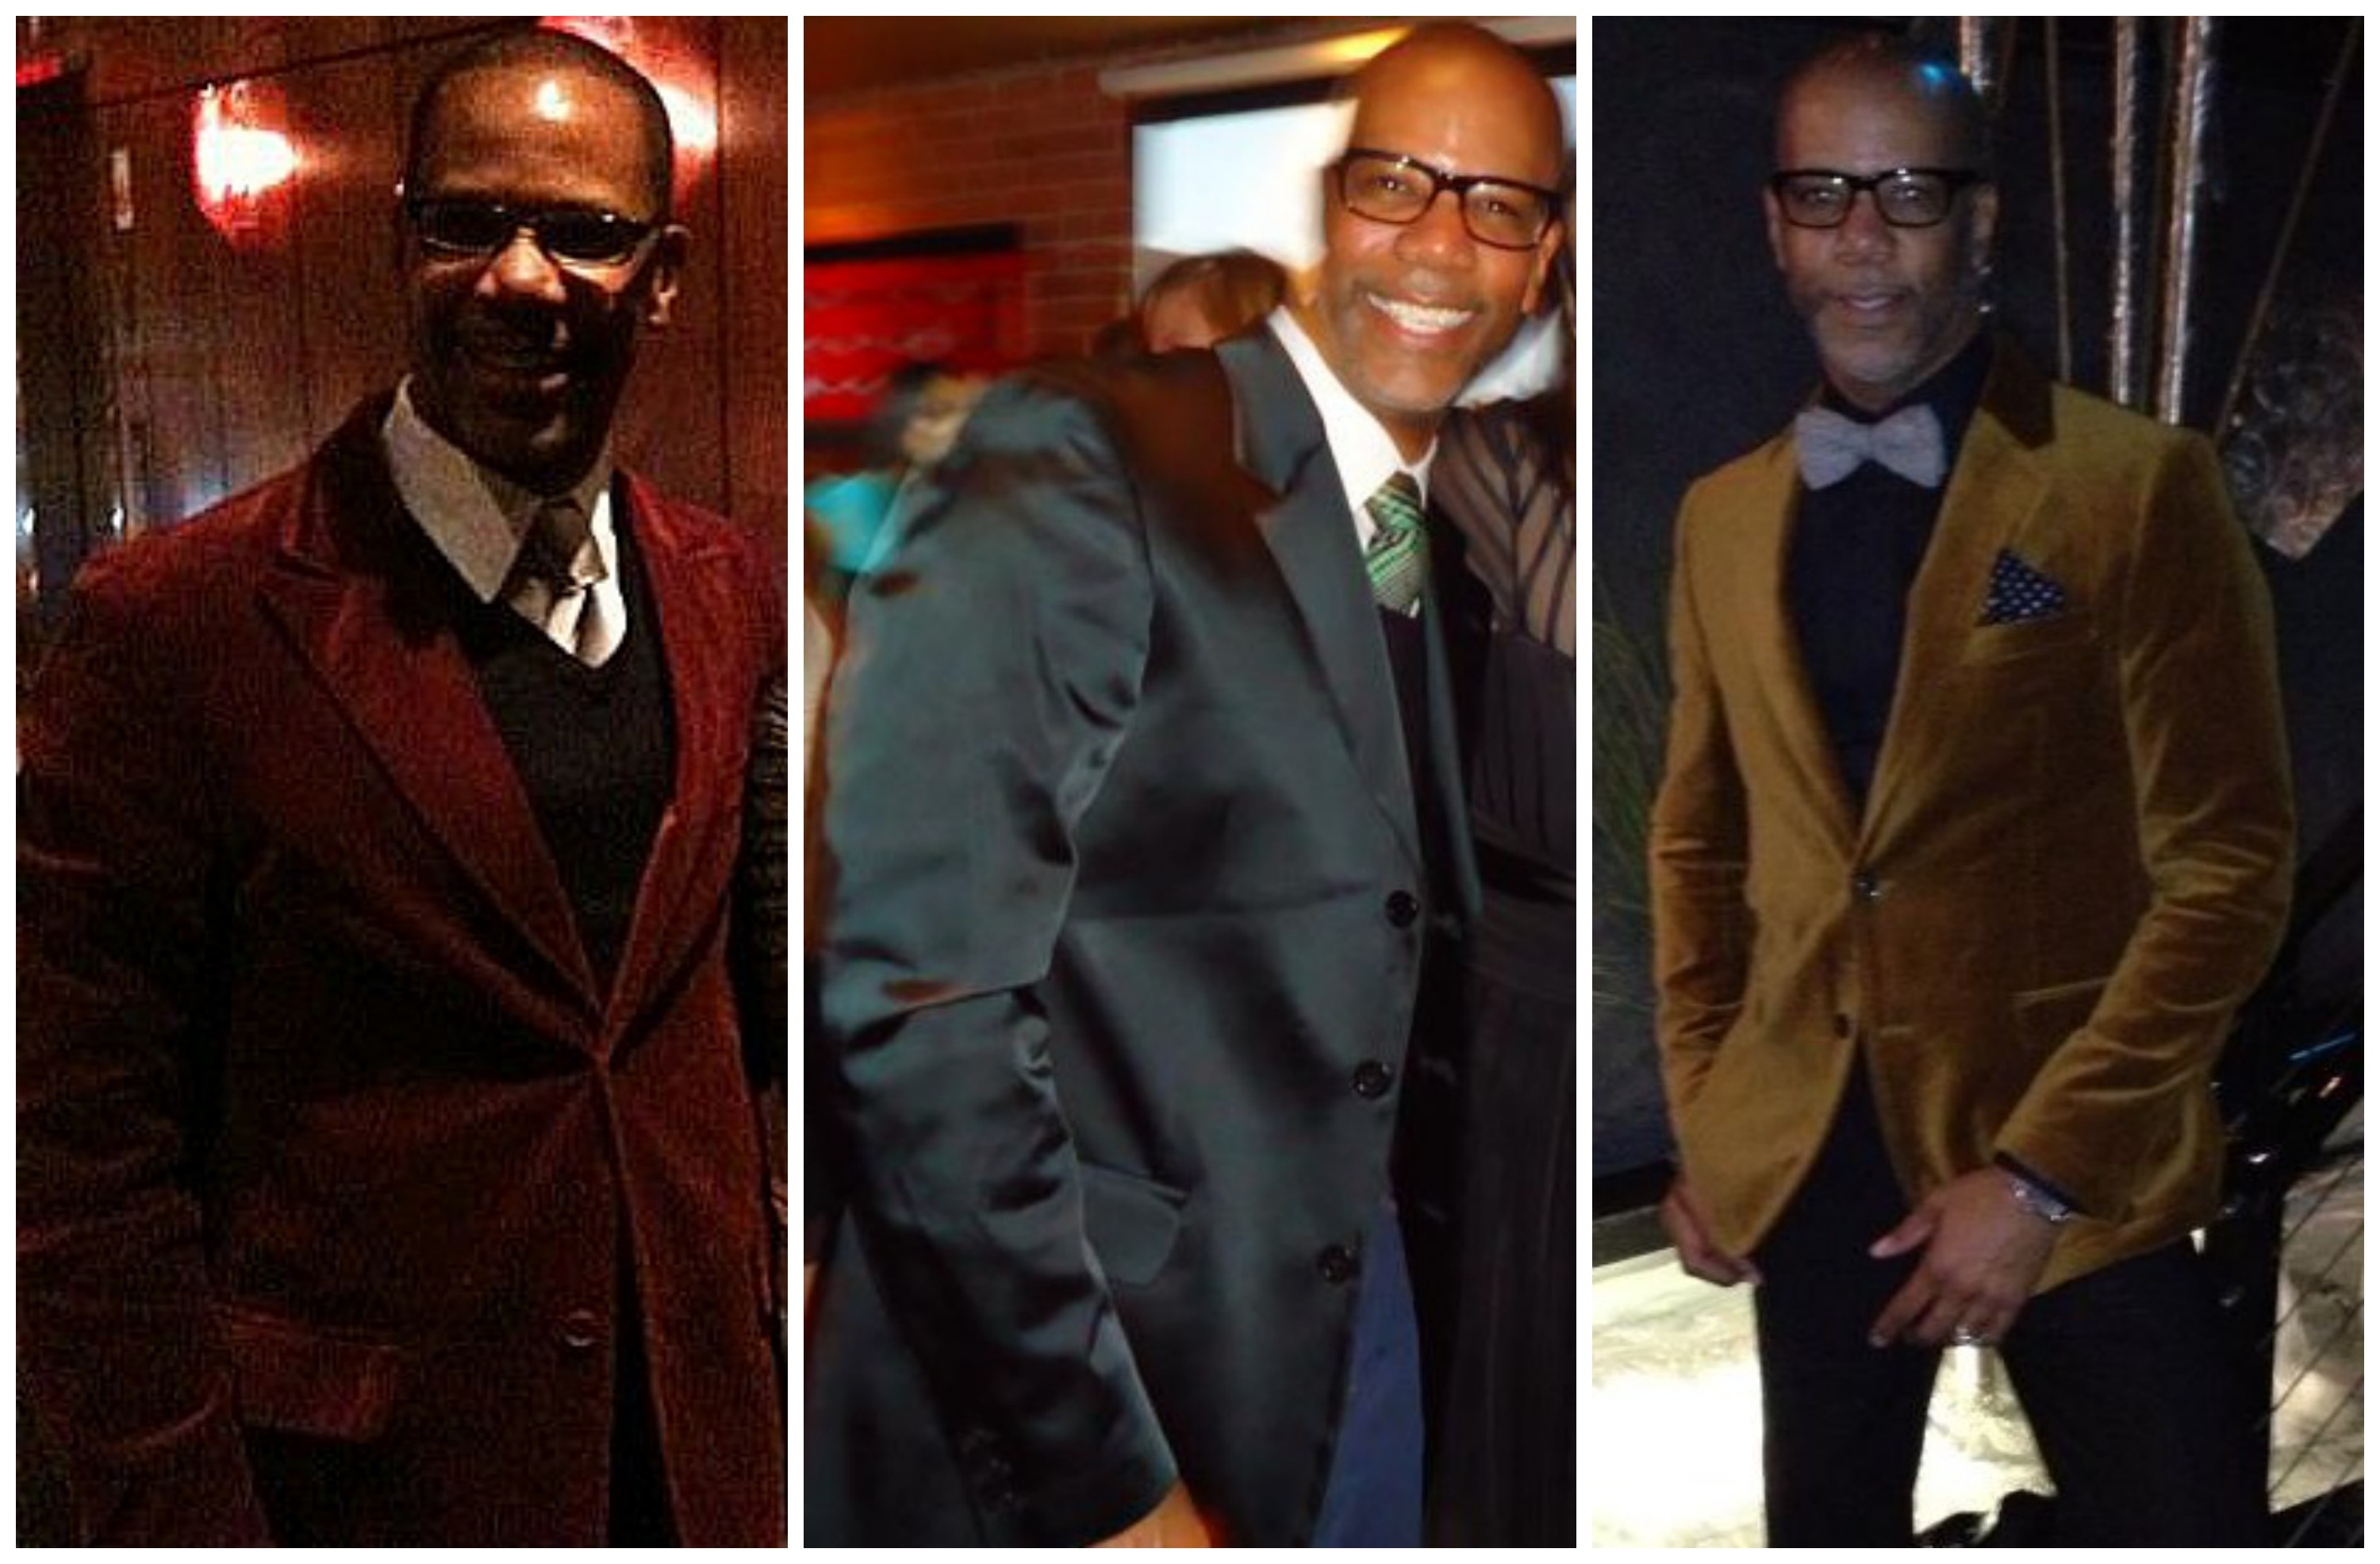 Christmas Party Suit Men.Holiday Party Fashion Tips For Men Sv Branches